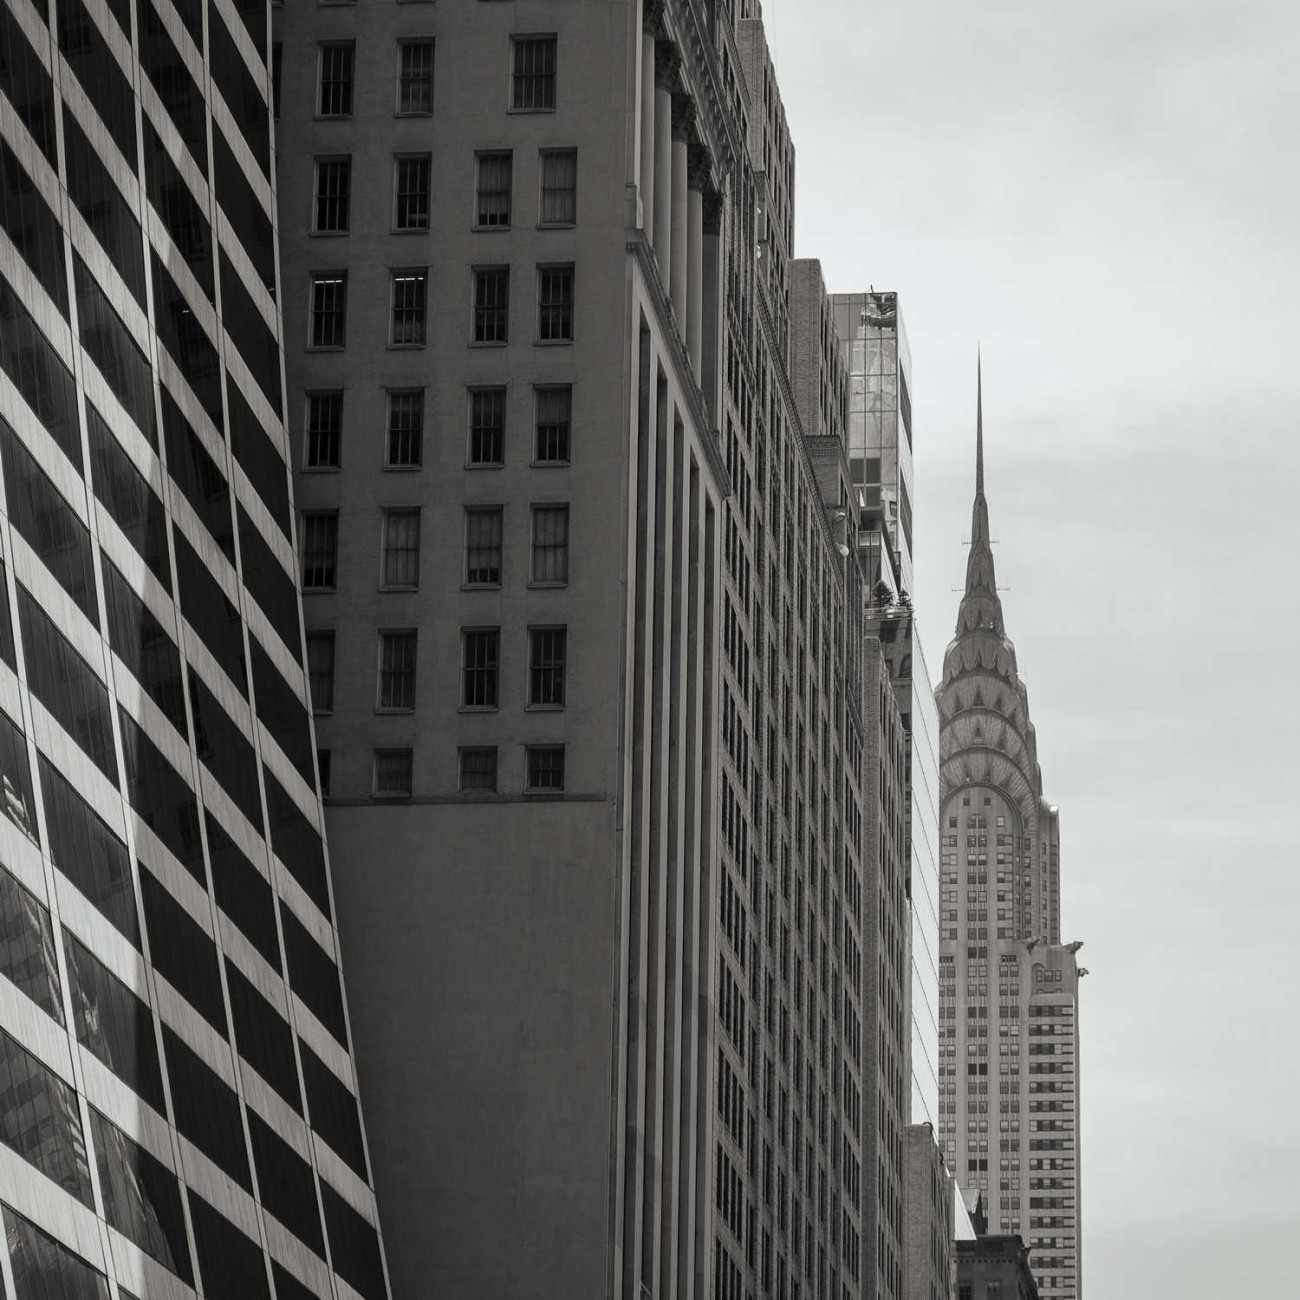 Chysler Building spire, New York, 2014